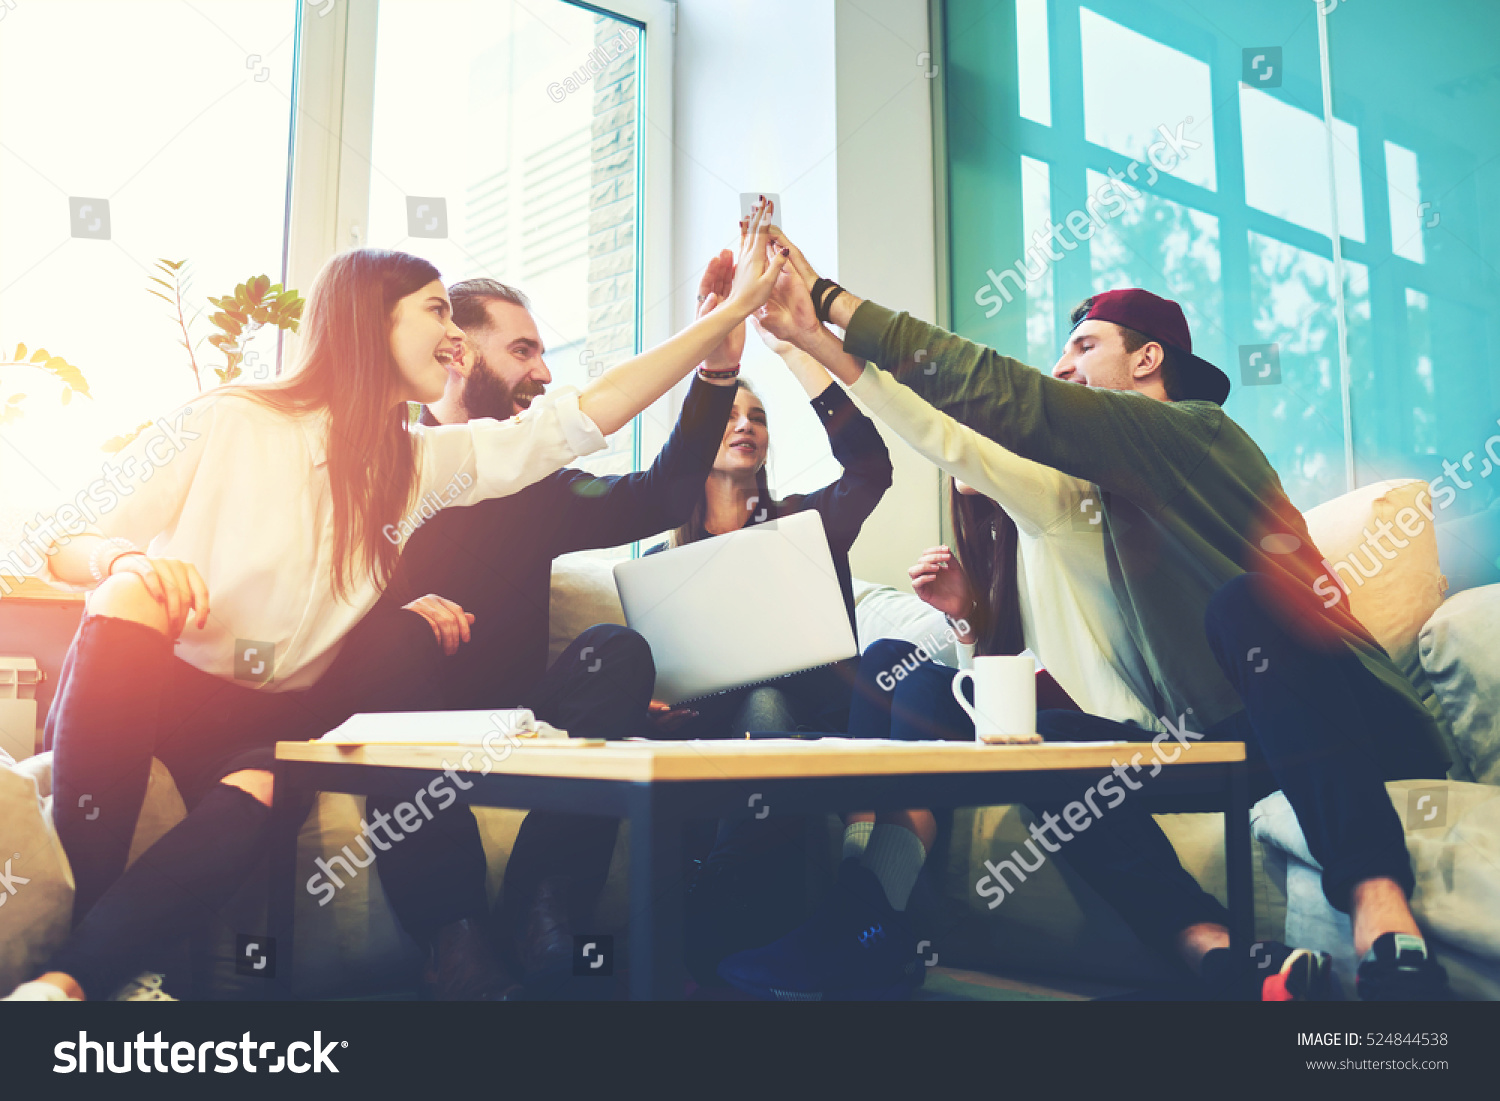 Female and male classmates celebrating pathing math examination, feeling exciting and cheerful , giving high five during informal meeting in friendly atmosphere with modern laptop in coworking space #524844538